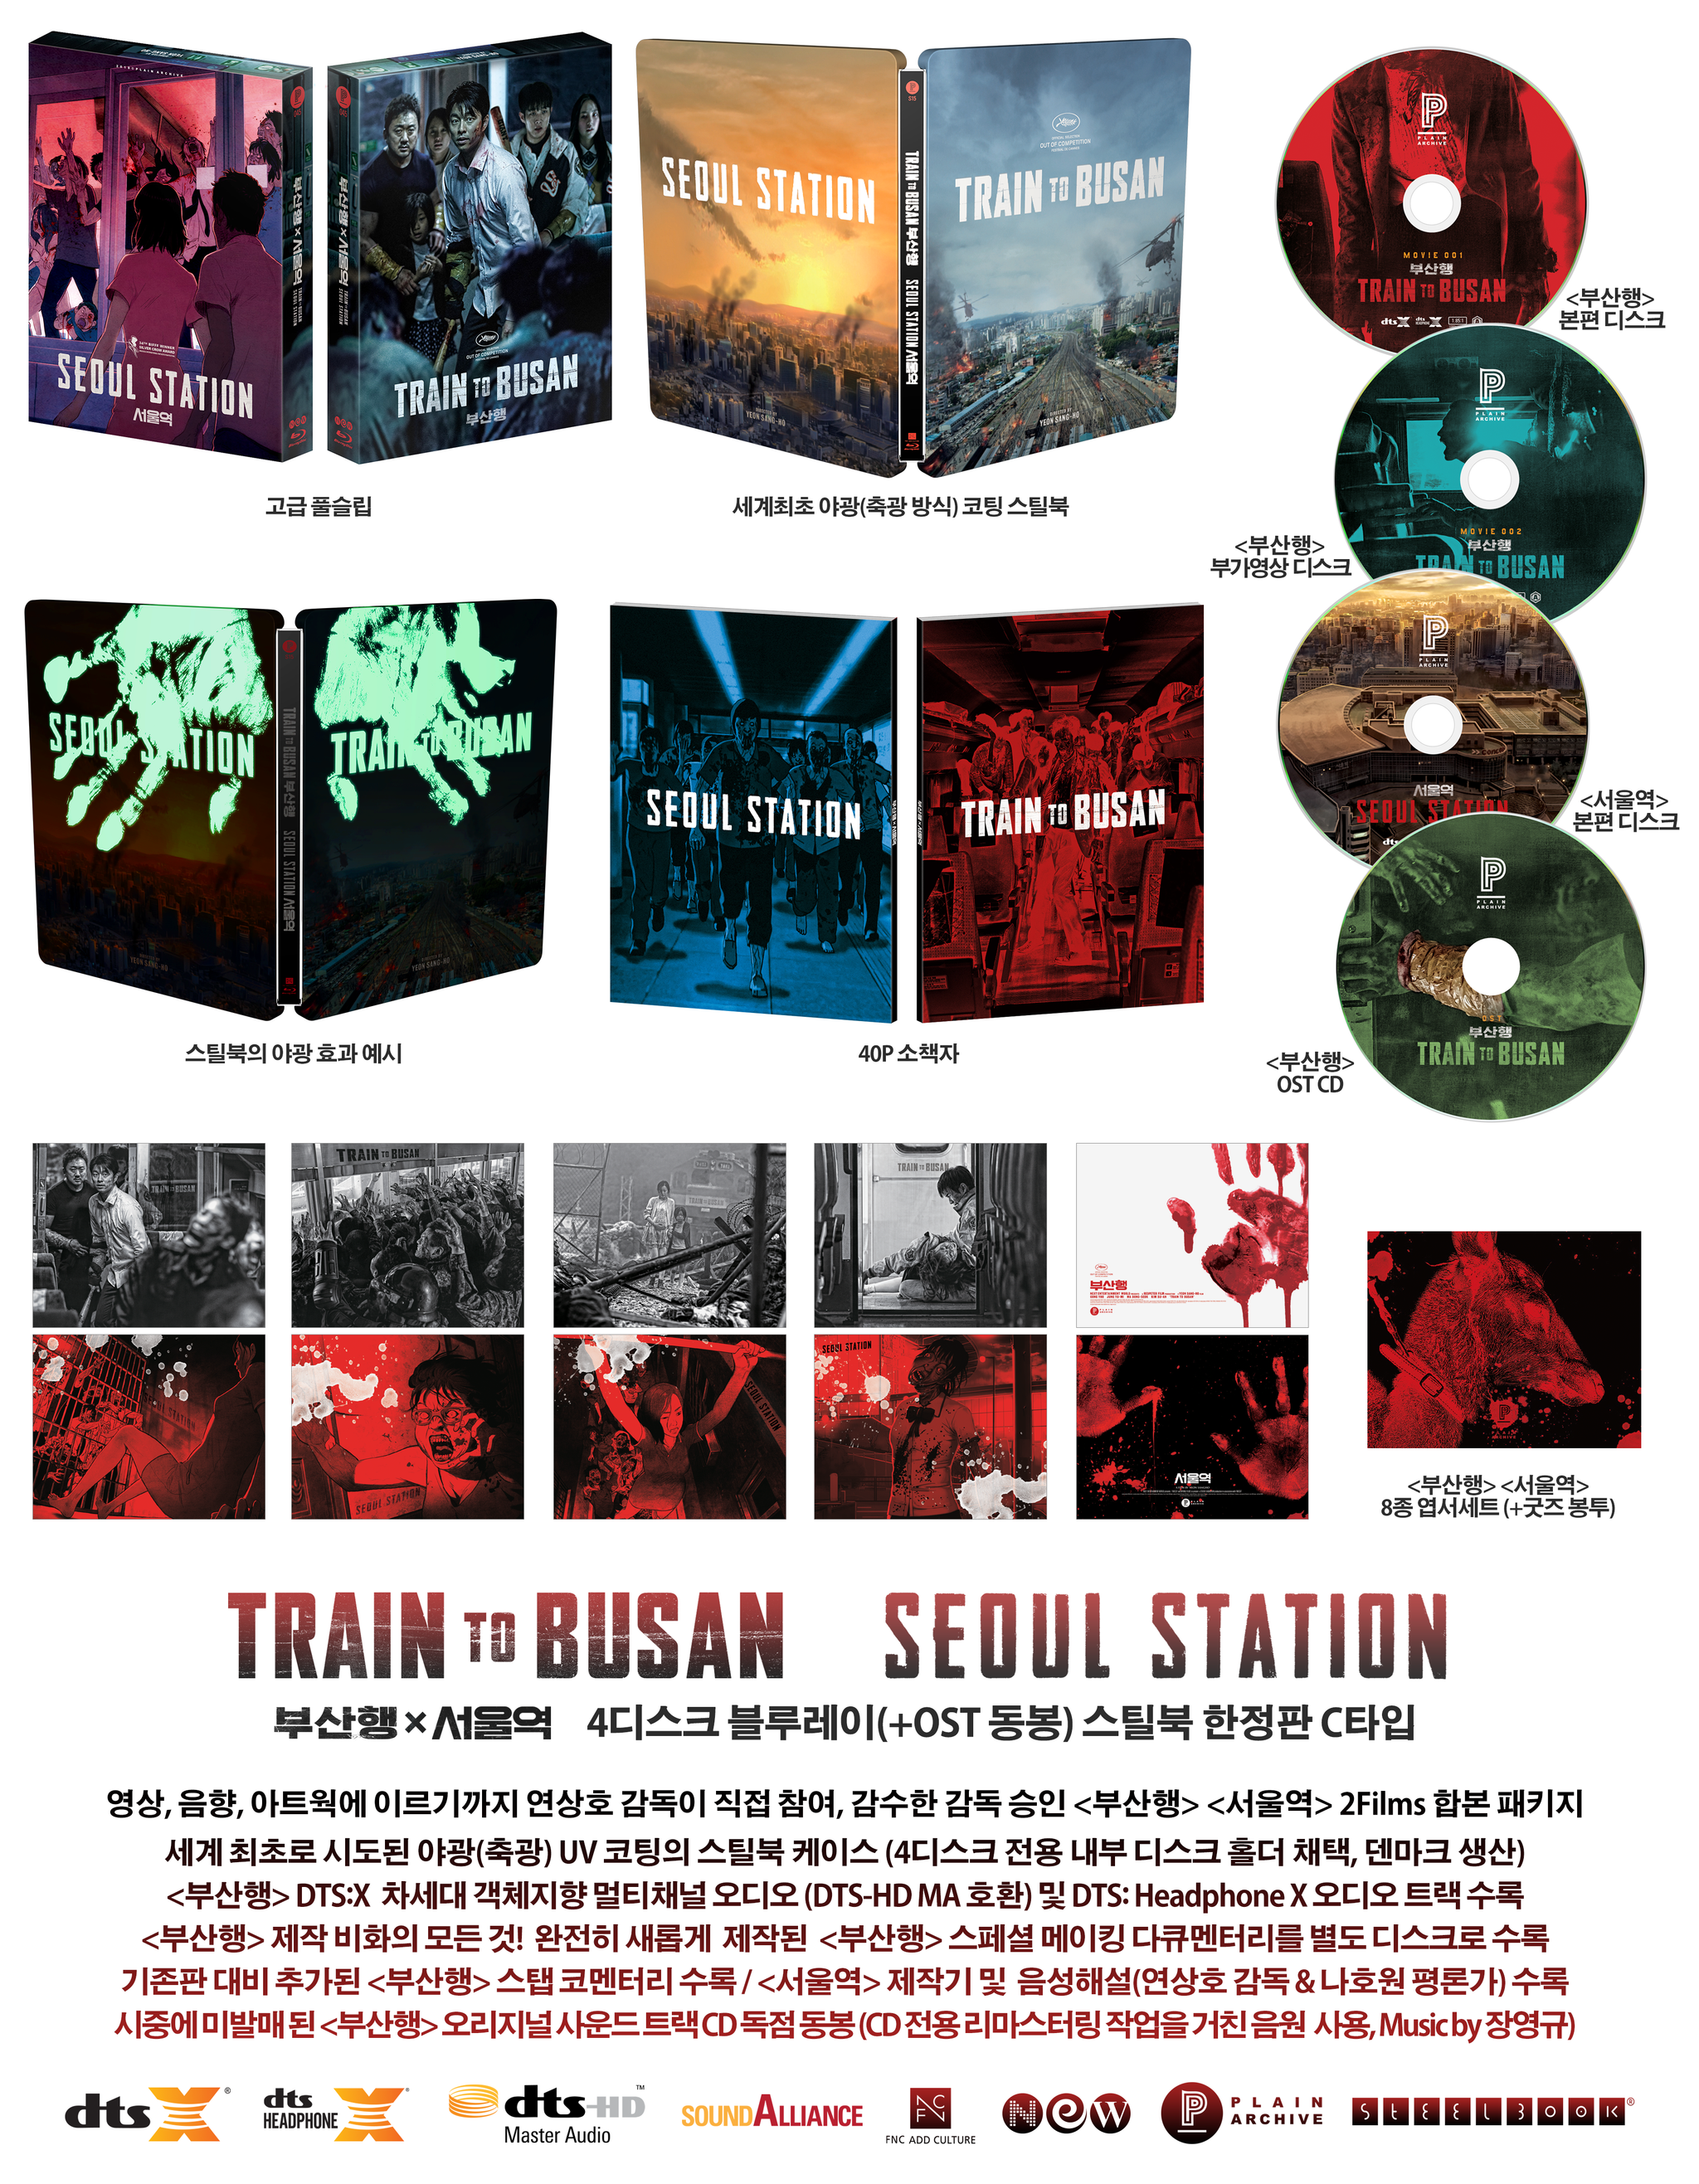 Train to Busan × Seoul Station Steelbook: Full Slip (Type C)